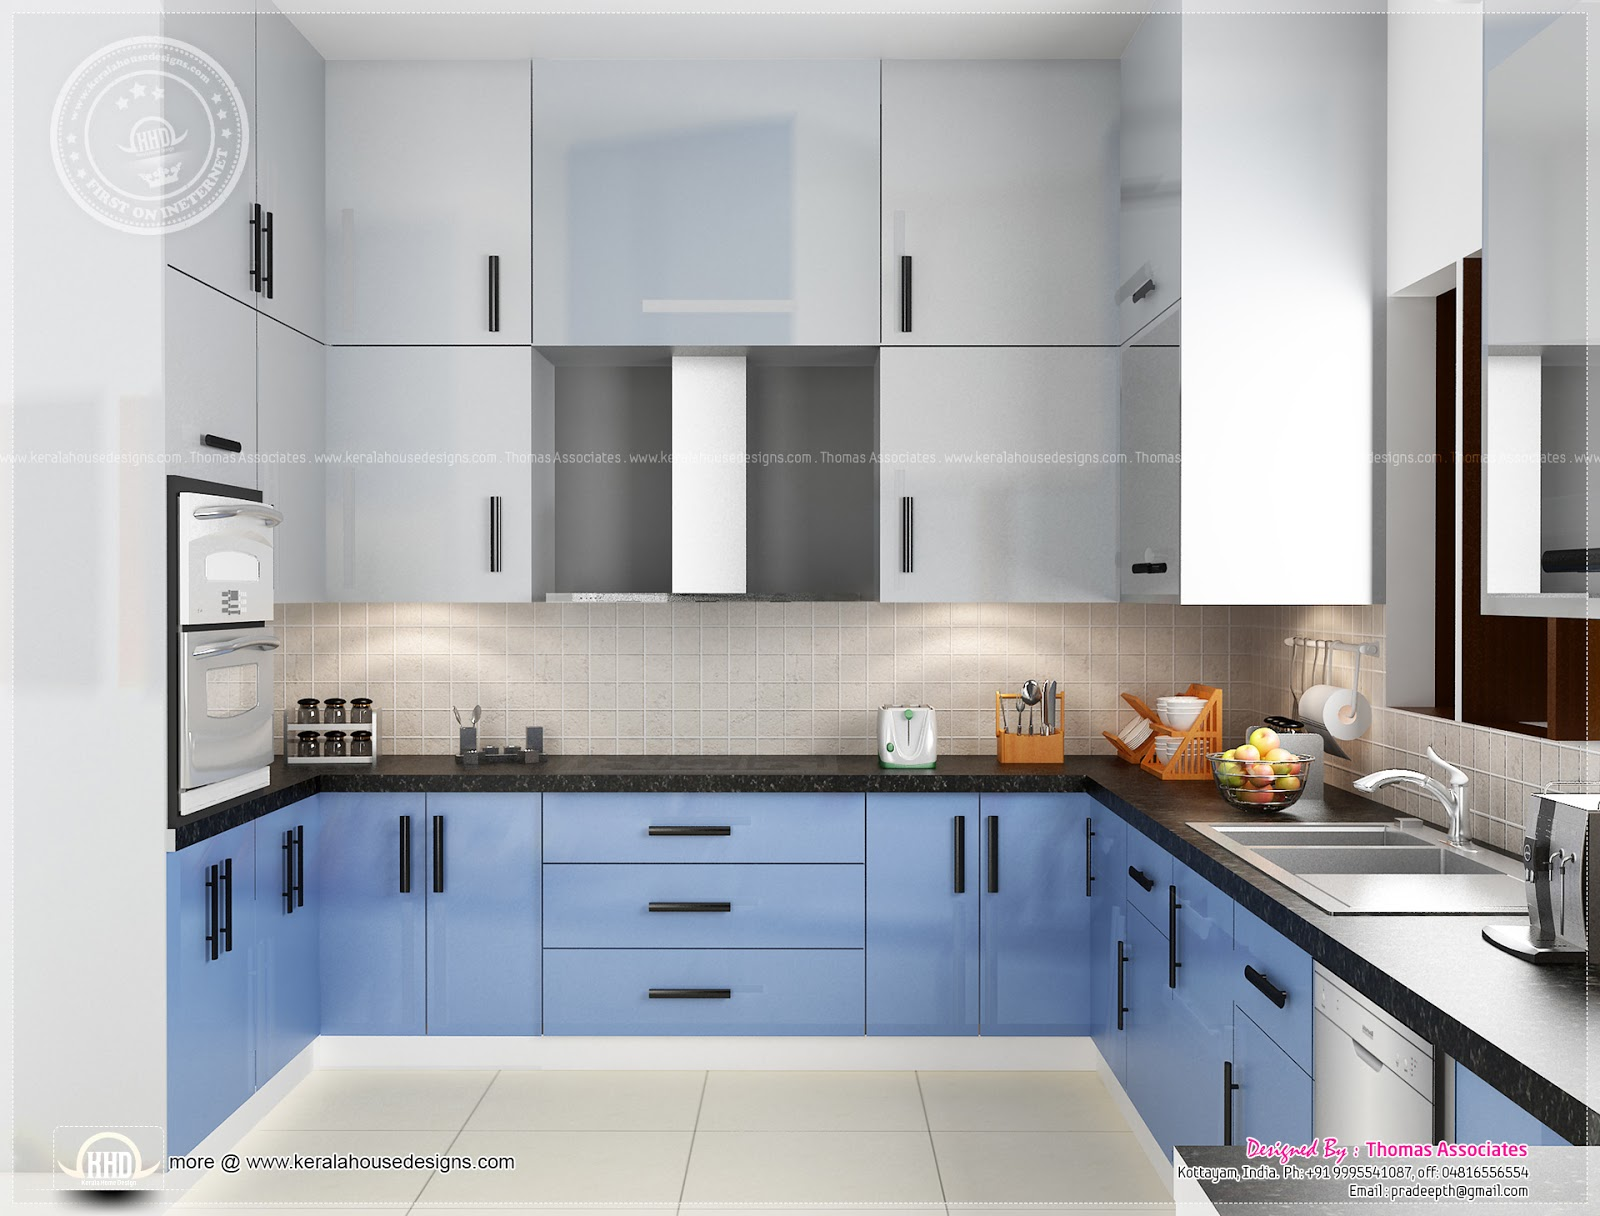 Indian kitchen interior design photos home design and for Kitchen interior design india